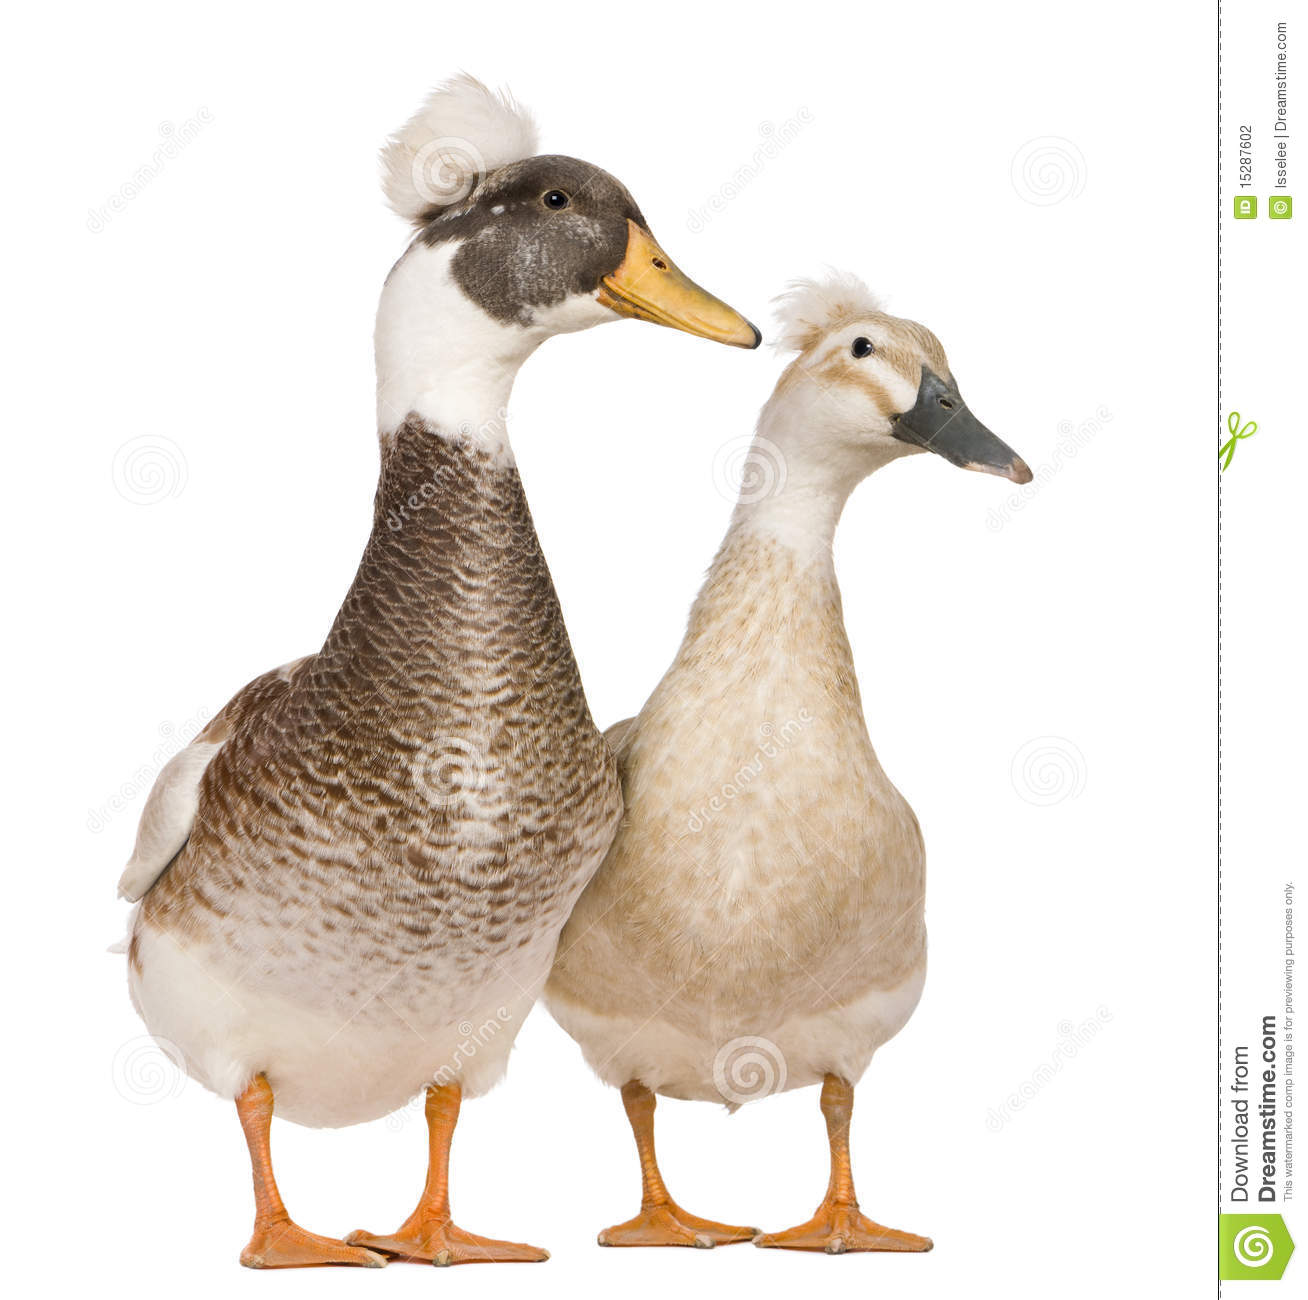 Male and female Crested Ducks, 3 years old